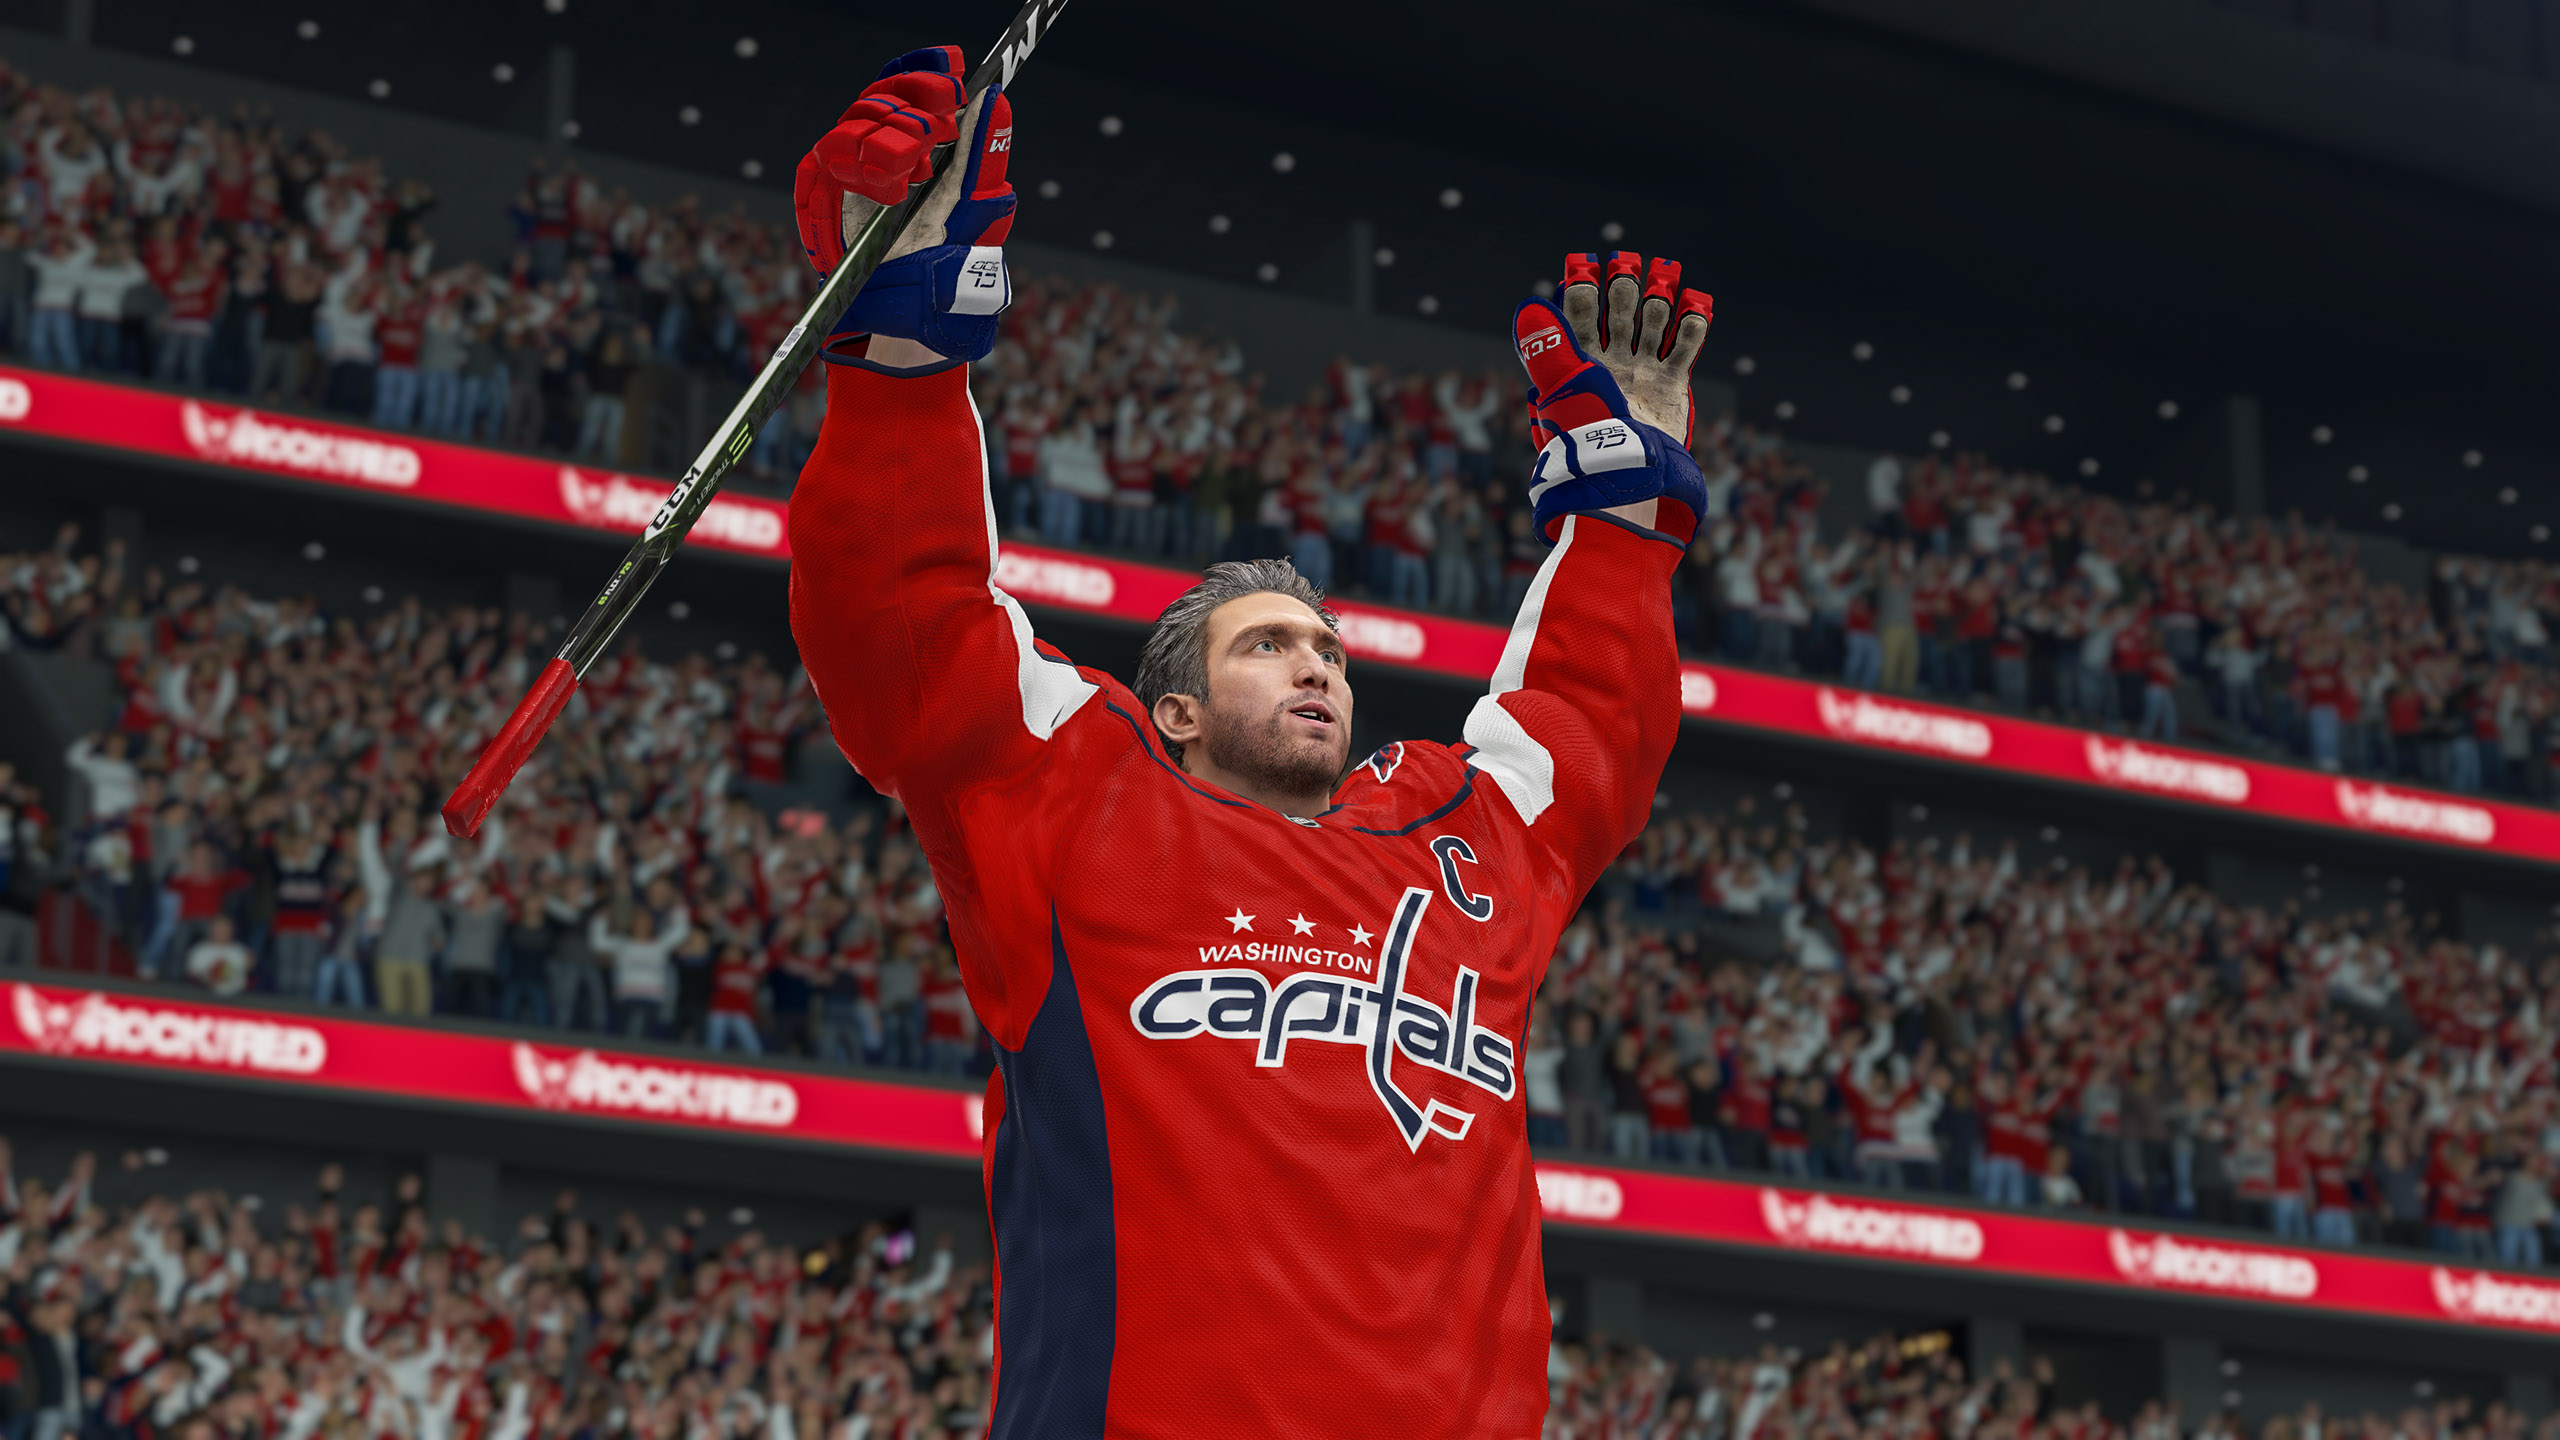 Alex Ovechkin offers hilarious comment about making NHL 21 cover